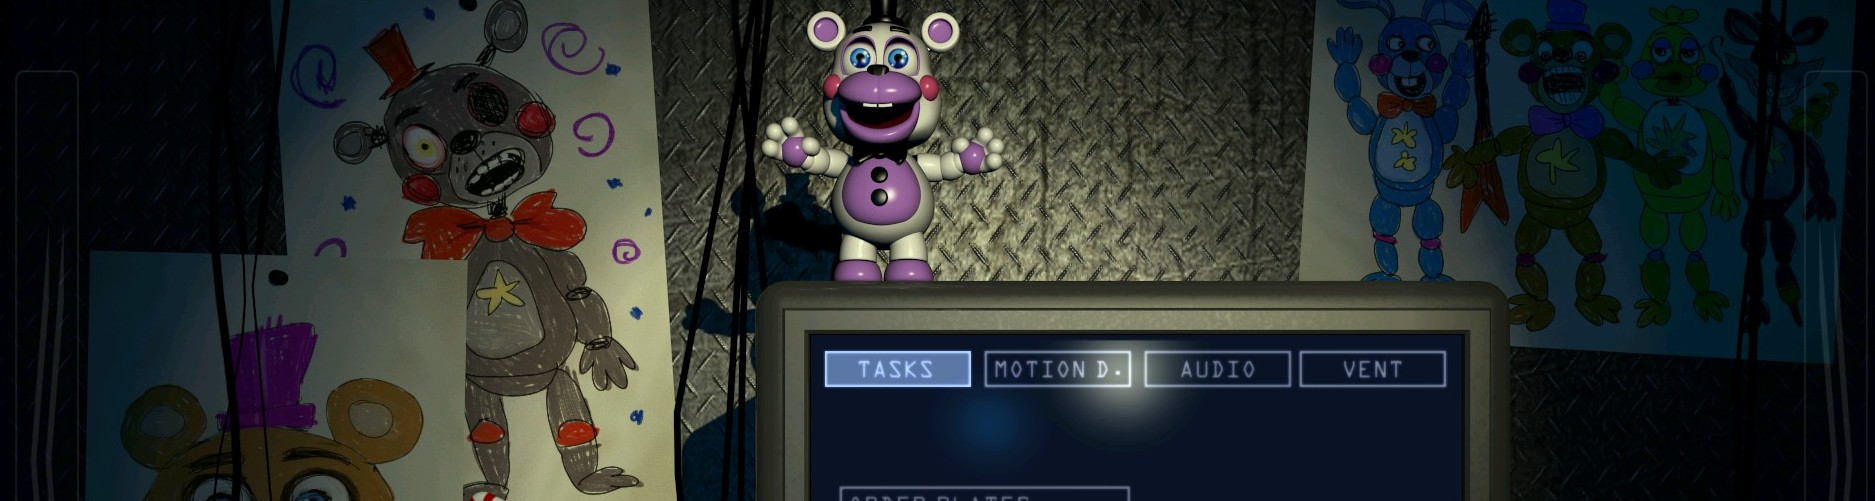 Freddy Fazbear's Pizzeria Simulator Guide - FNAF 6 Cheats